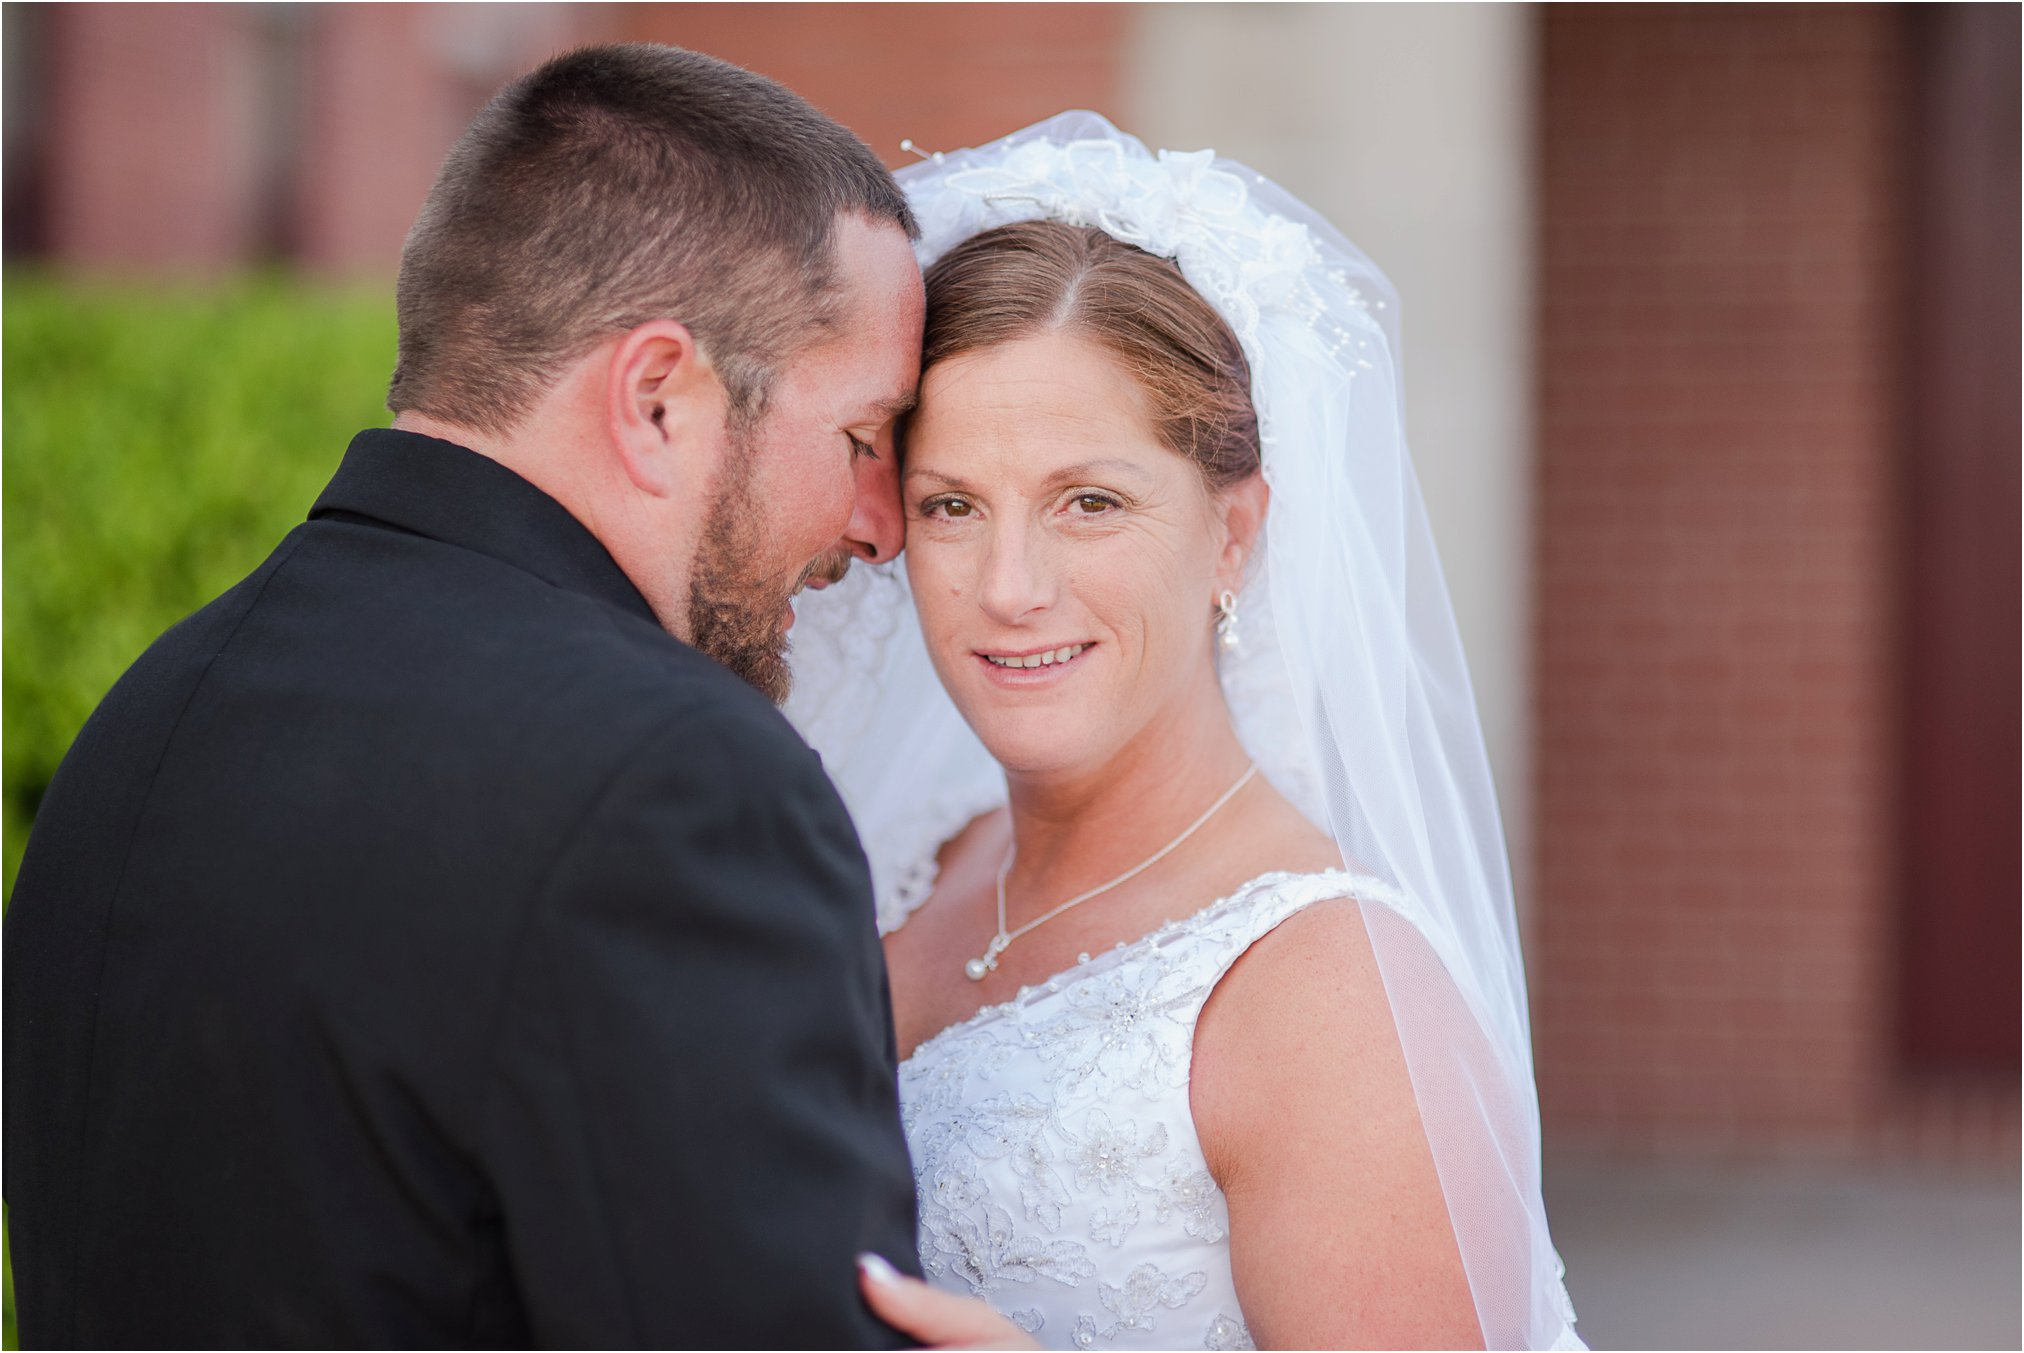 Lynchburg Wedding Photographer_0021.jpg